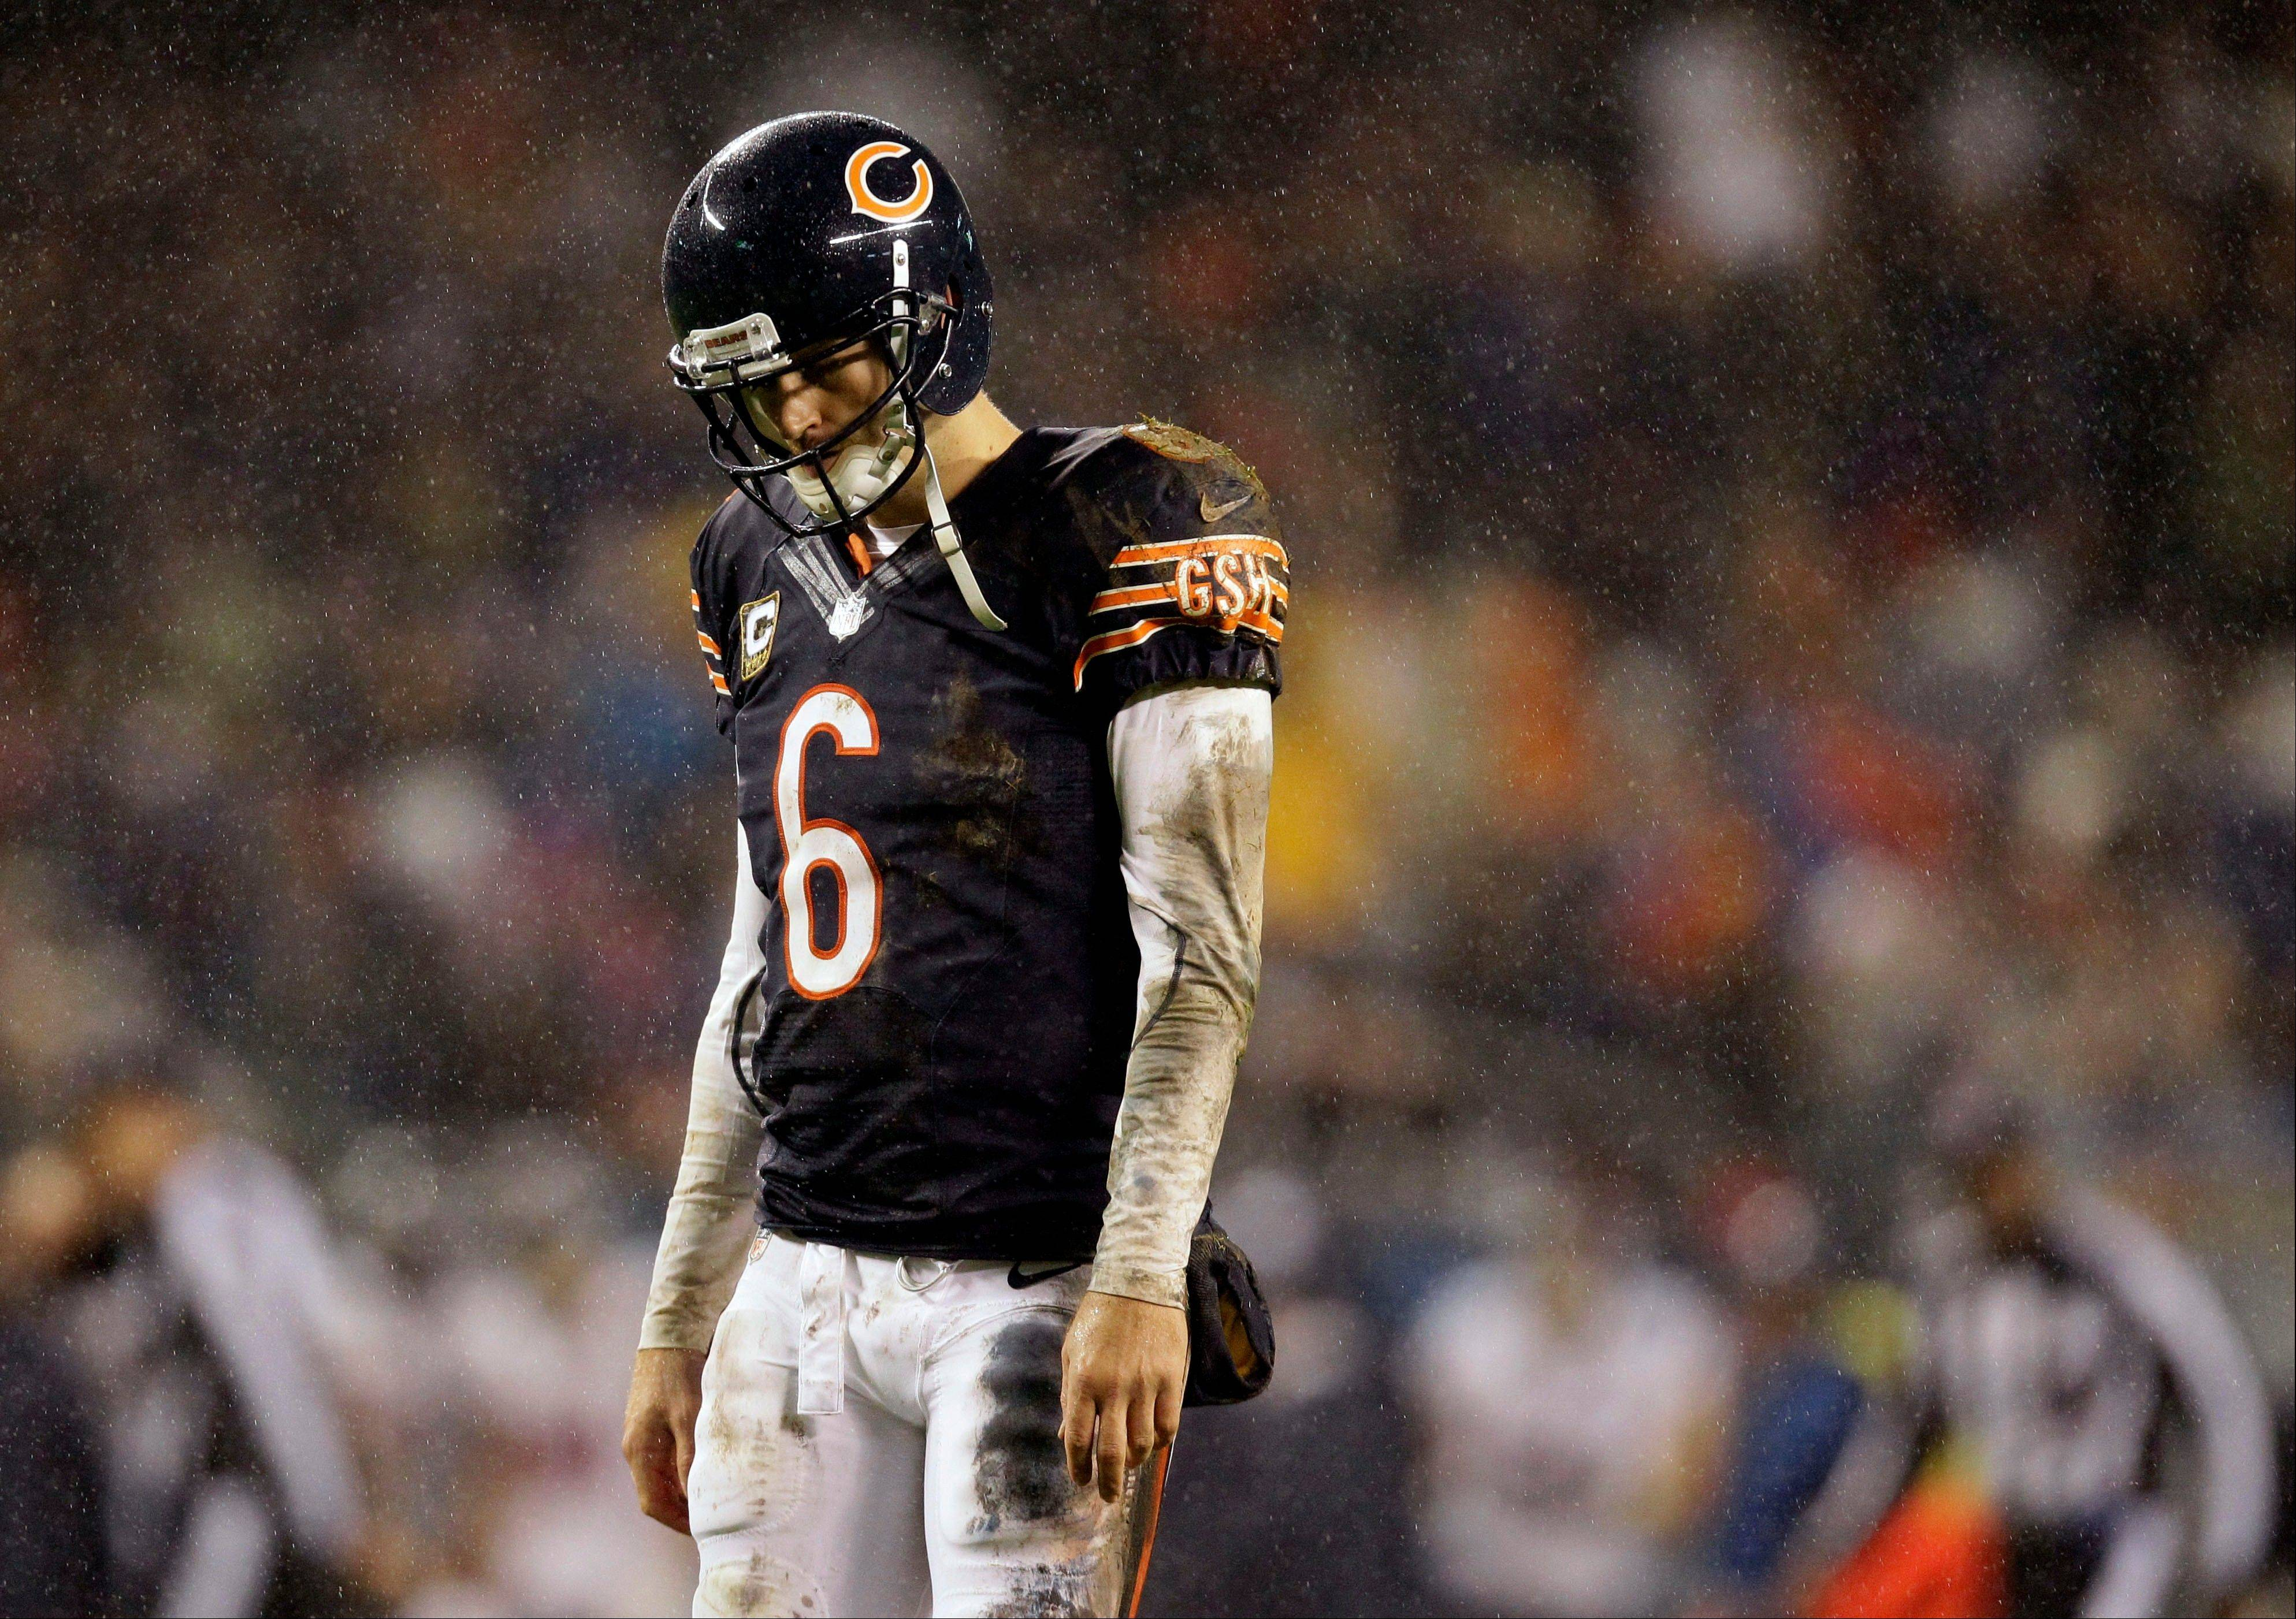 Chicago Bears quarterback Jay Cutler (6) walks of the field after a play against the Houston Texans in the first half an NFL football game in Chicago, Sunday, Nov. 11, 2012. (AP Photo/Nam Y. Huh)